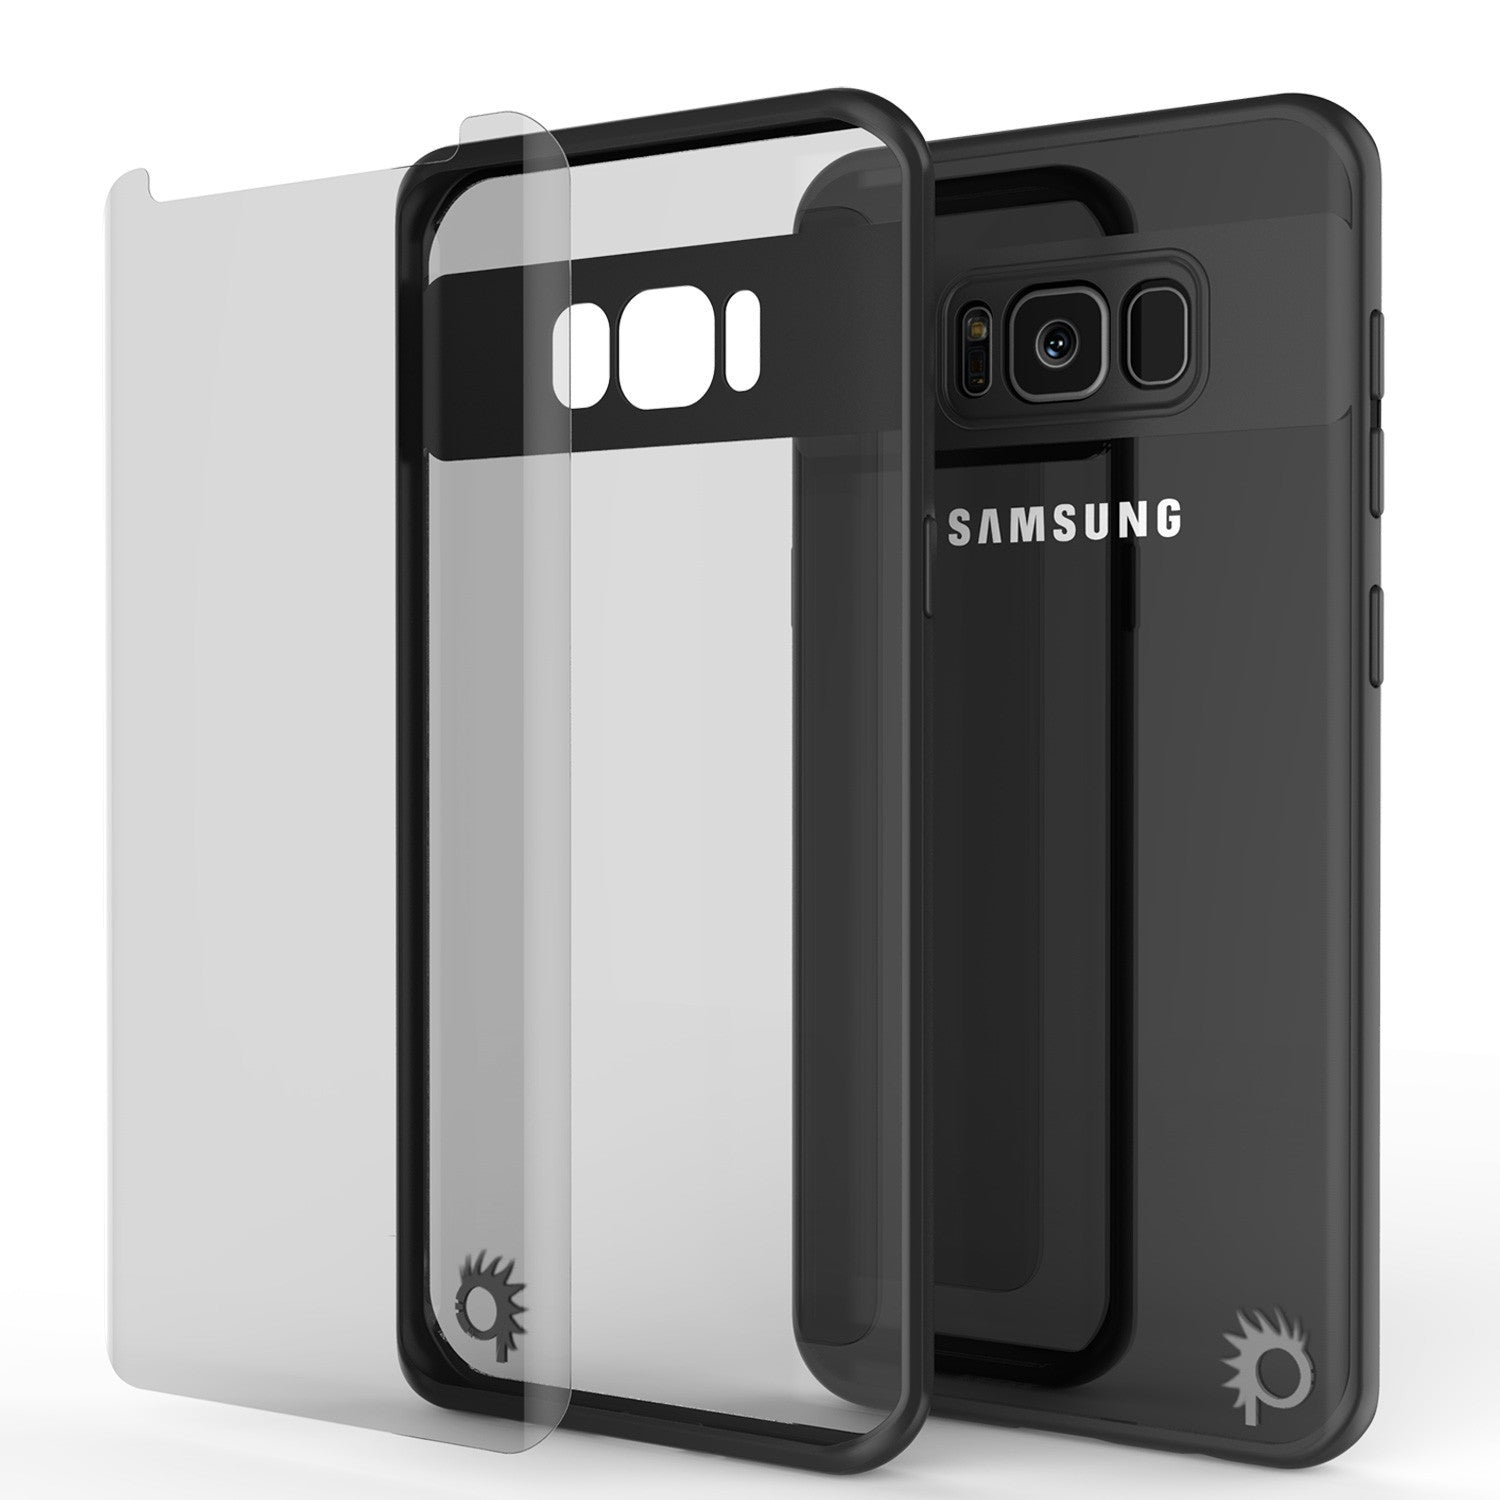 Galaxy S8 Plus Case, Punkcase [MASK Series] [BLACK] Full Body Hybrid Dual Layer TPU Cover W/ Protective PUNKSHIELD Screen Protector